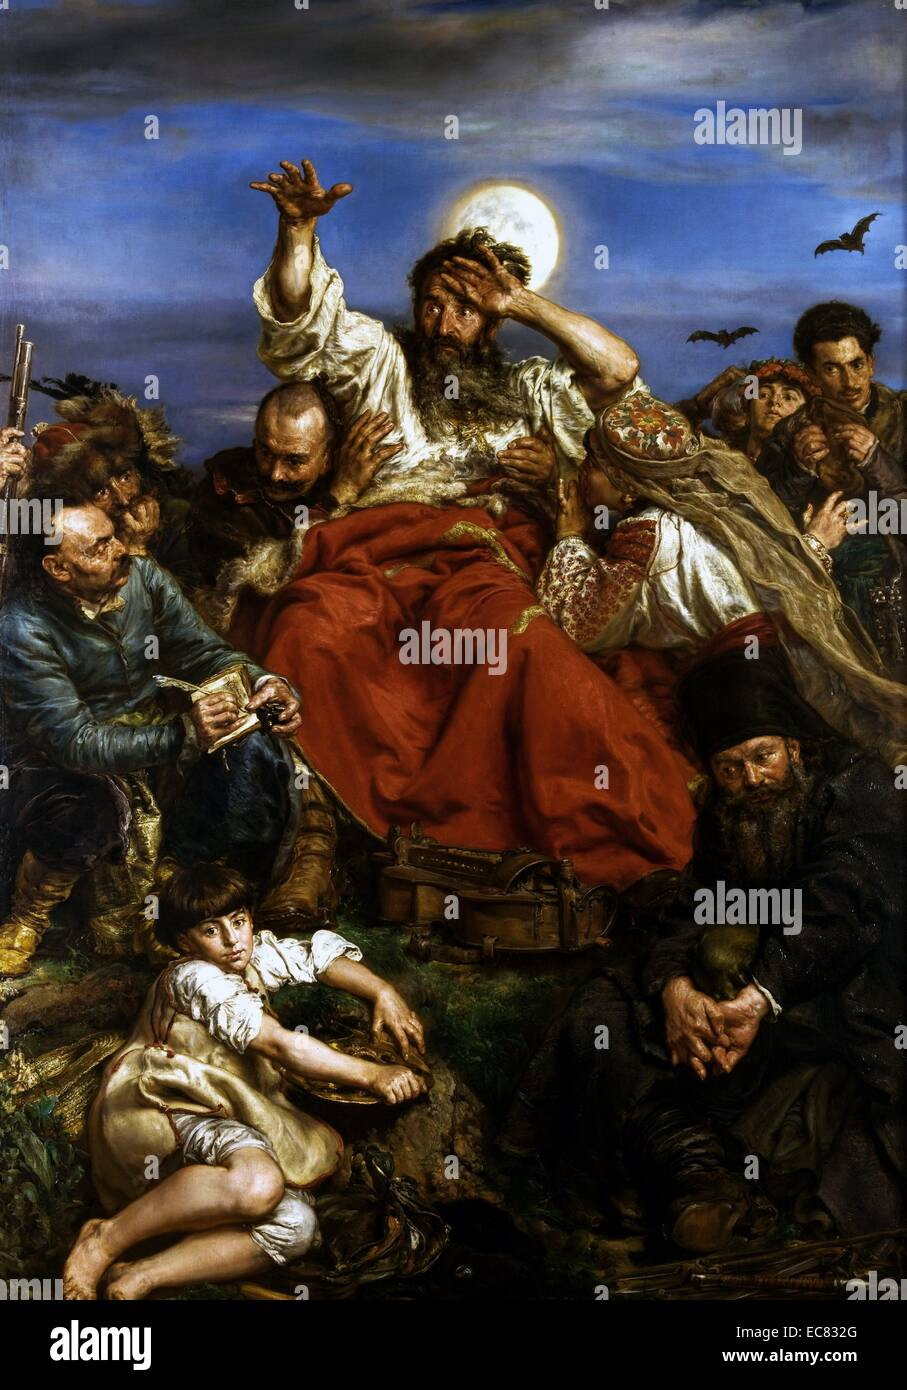 Wernyhora 1883–1884 by Jan Matejko (1838–1893). Wernyhora was a legendary 18th century Cossack bard who prophesized Stock Photo